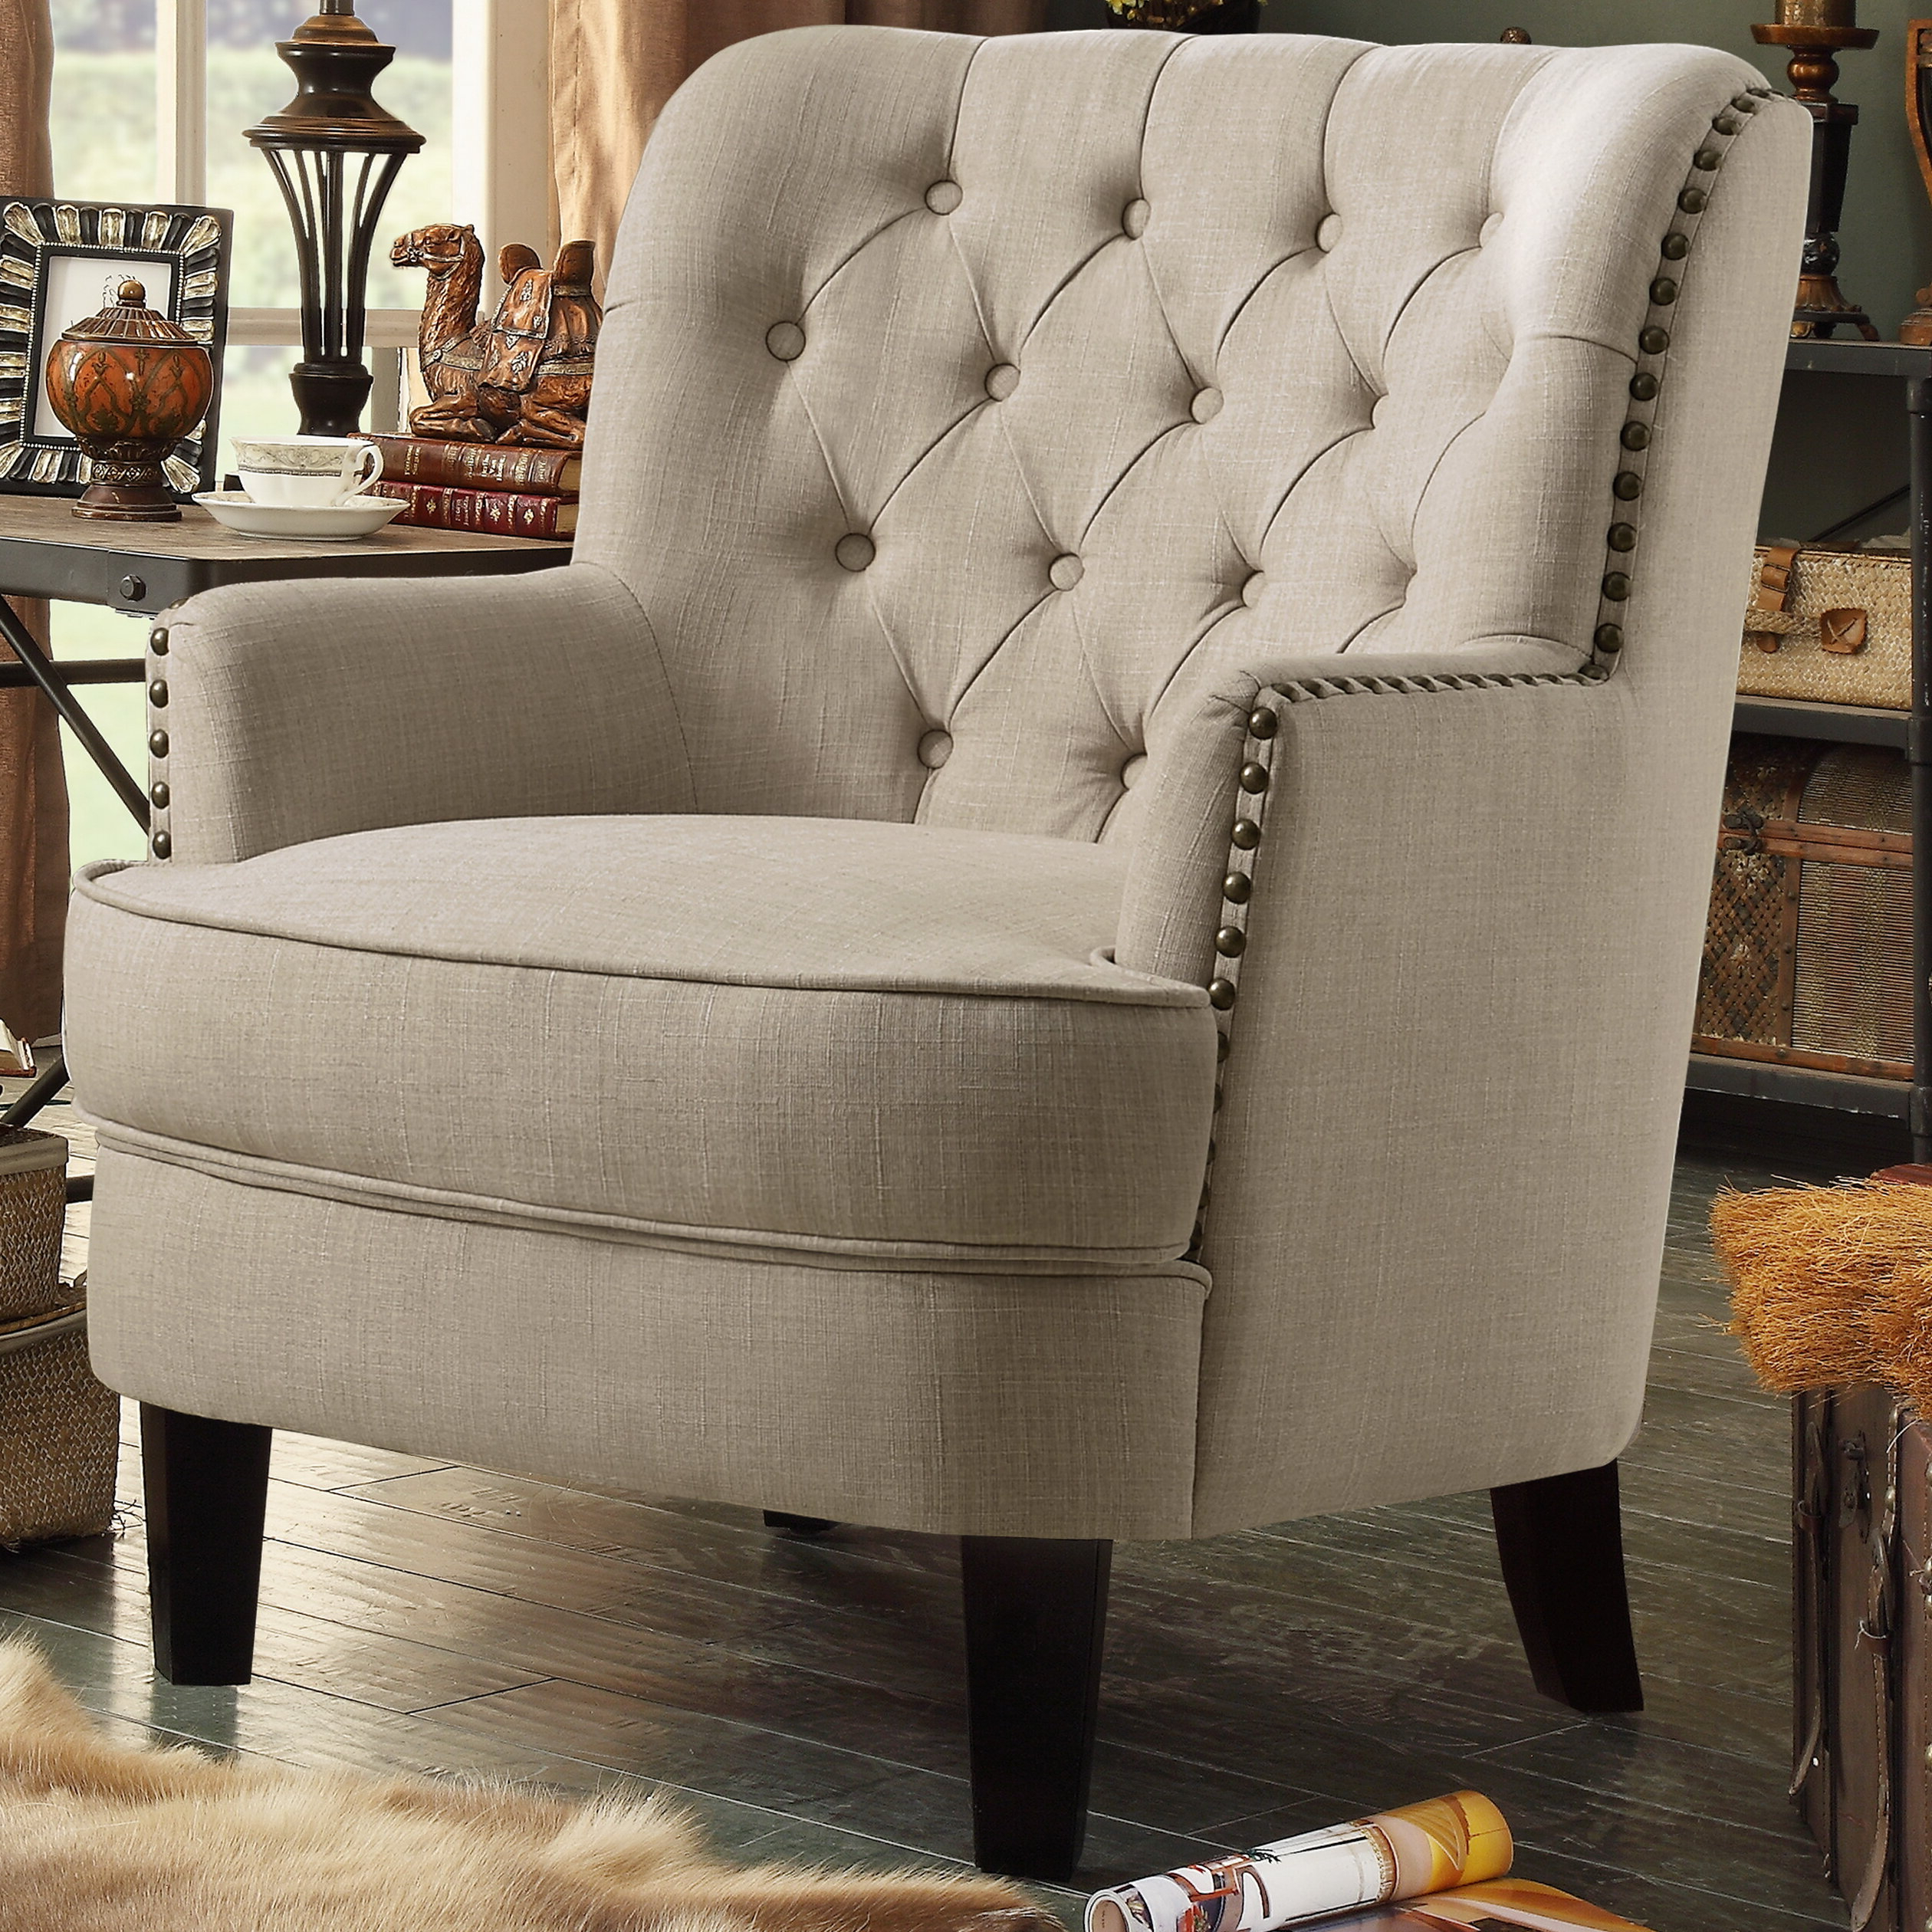 Best And Newest Lenaghan Wingback Chairs With 216 0810005 Видеочип Amd Mobility Radeon Hd 6750, Поставка (View 20 of 20)